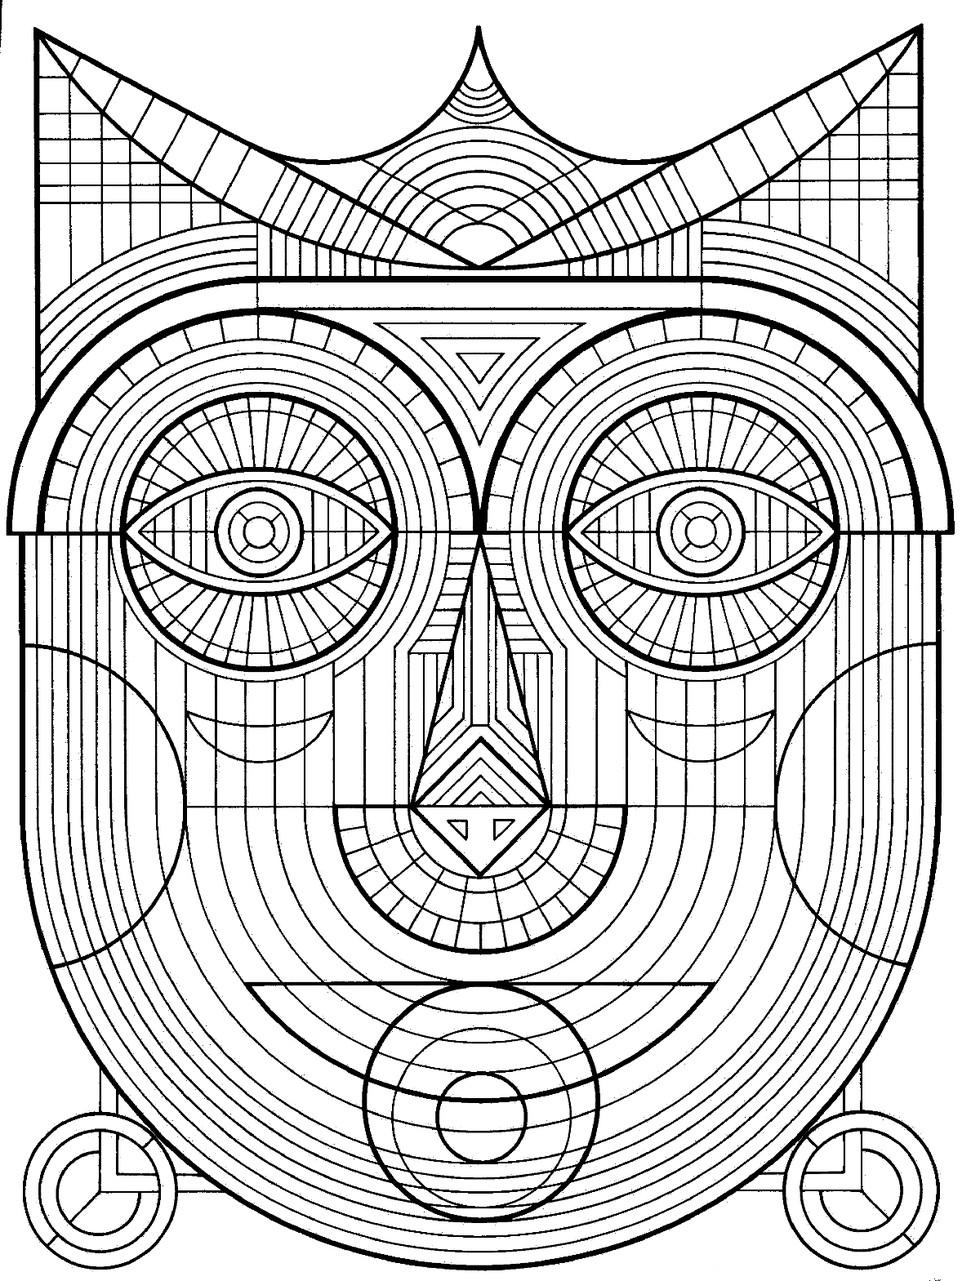 980x1281 These Printable Mandala And Abstract Coloring Pages Relieve Stress